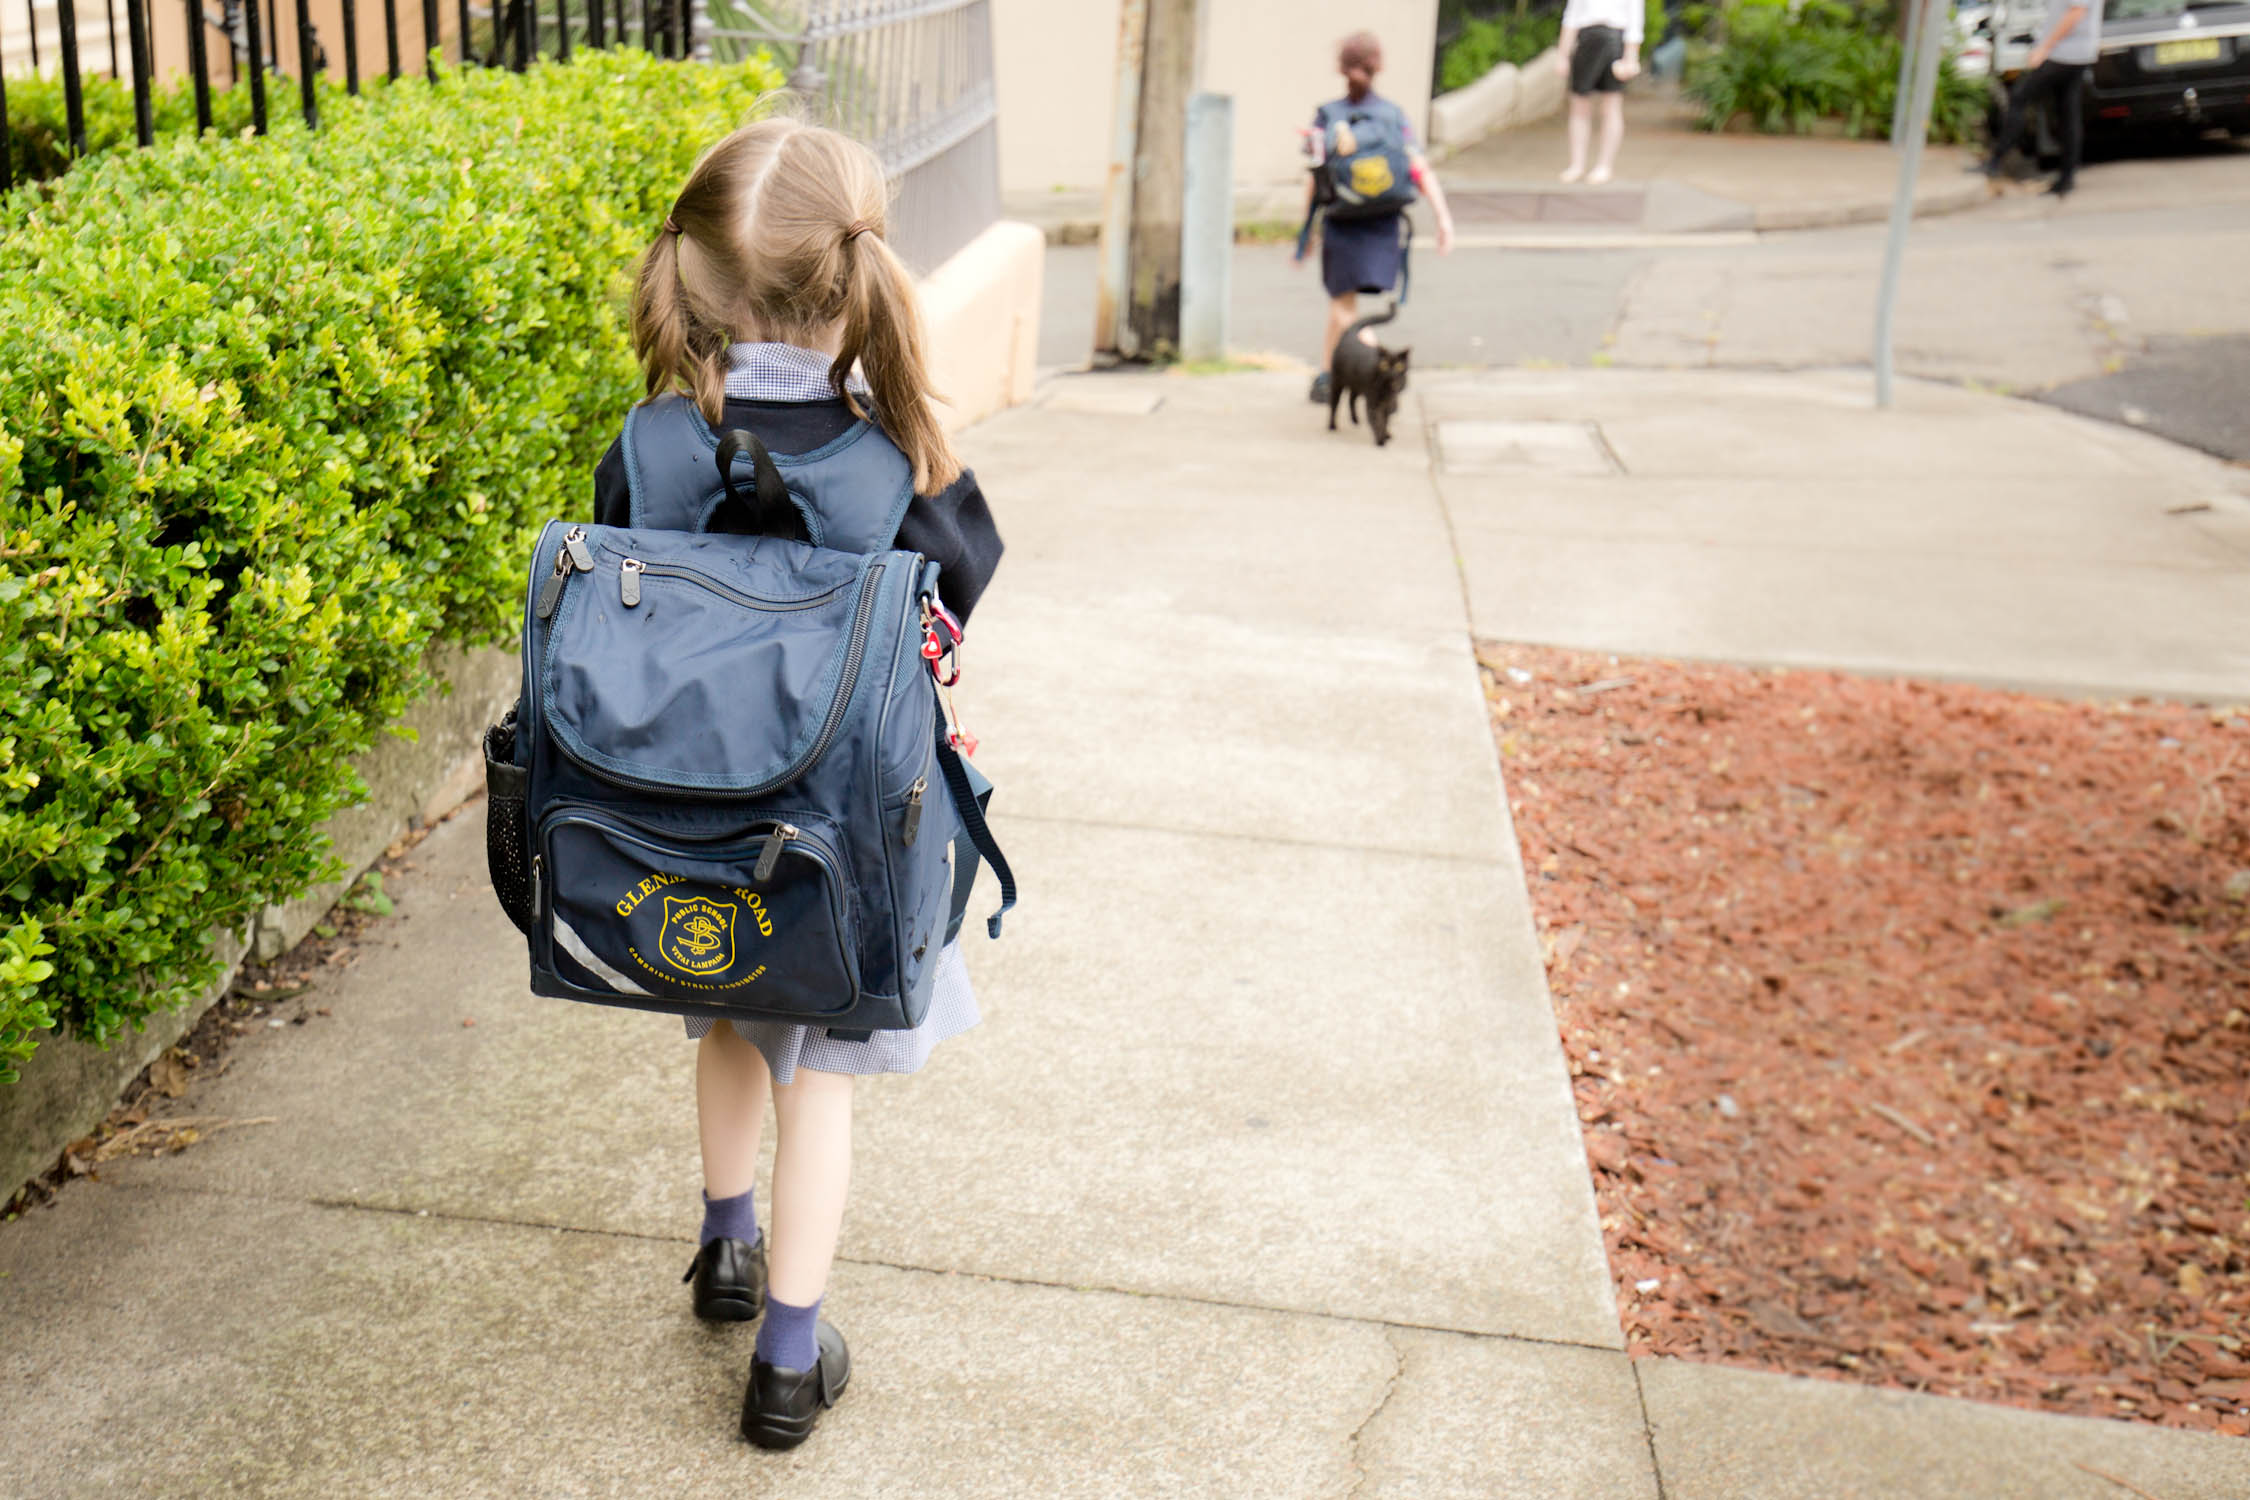 When kids start school, it's not just them who struggle to keep up with the busy schedule.